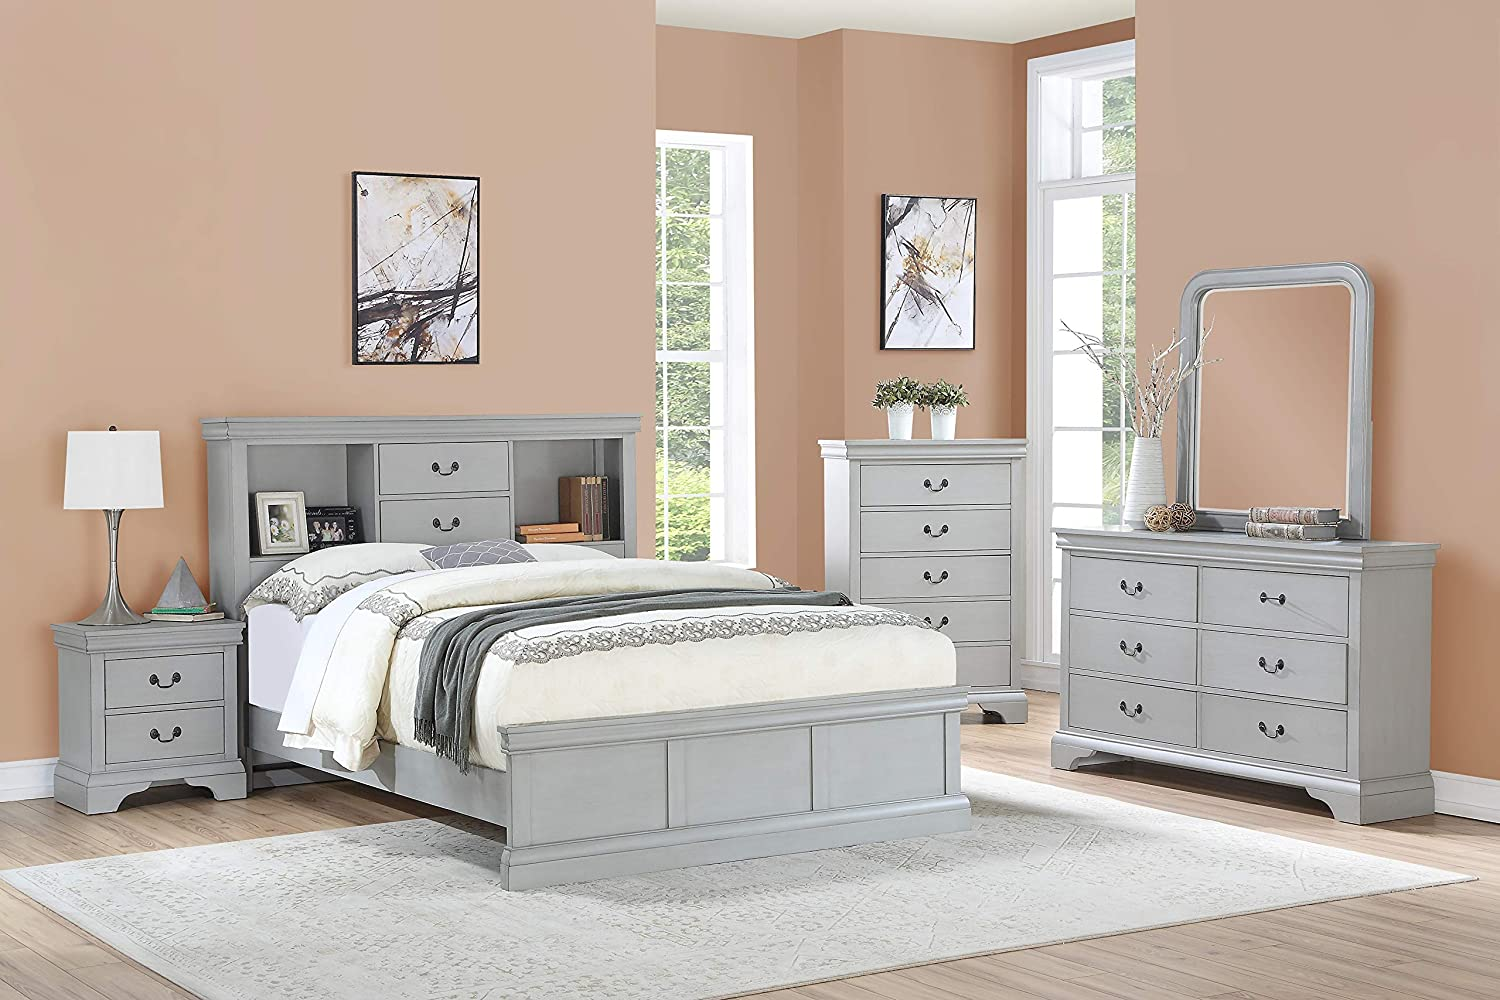 Amazon.com: Esofastore Classic Modern Bedroom Furniture 4pc Set ...